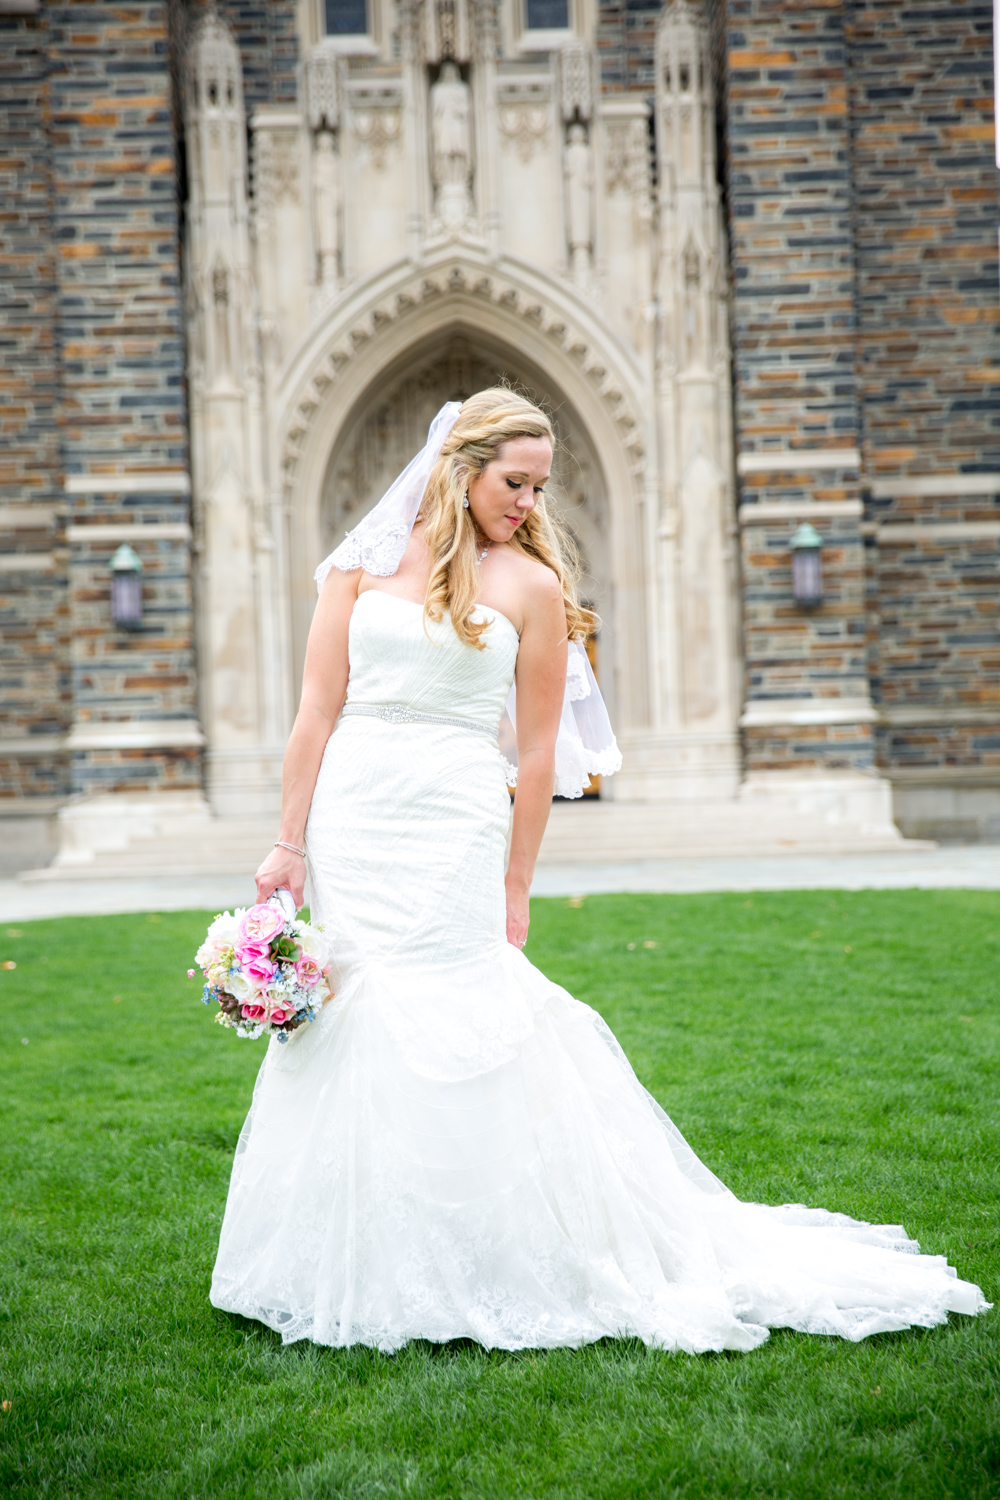 Ashley Blackwell Bridal Portraits Tiffany L Johnson